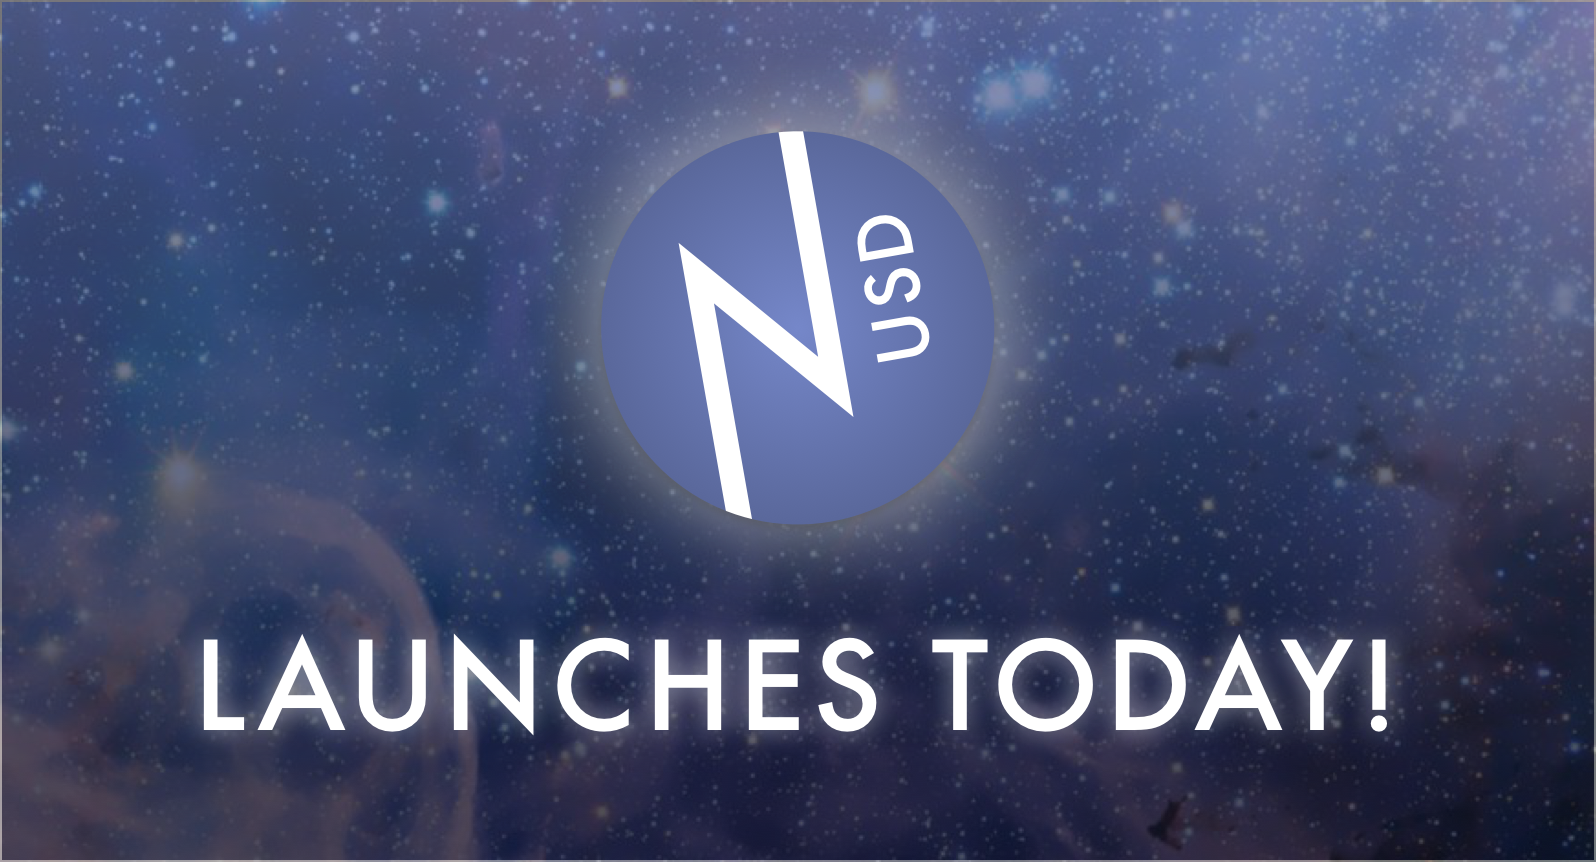 nUSD launches today!